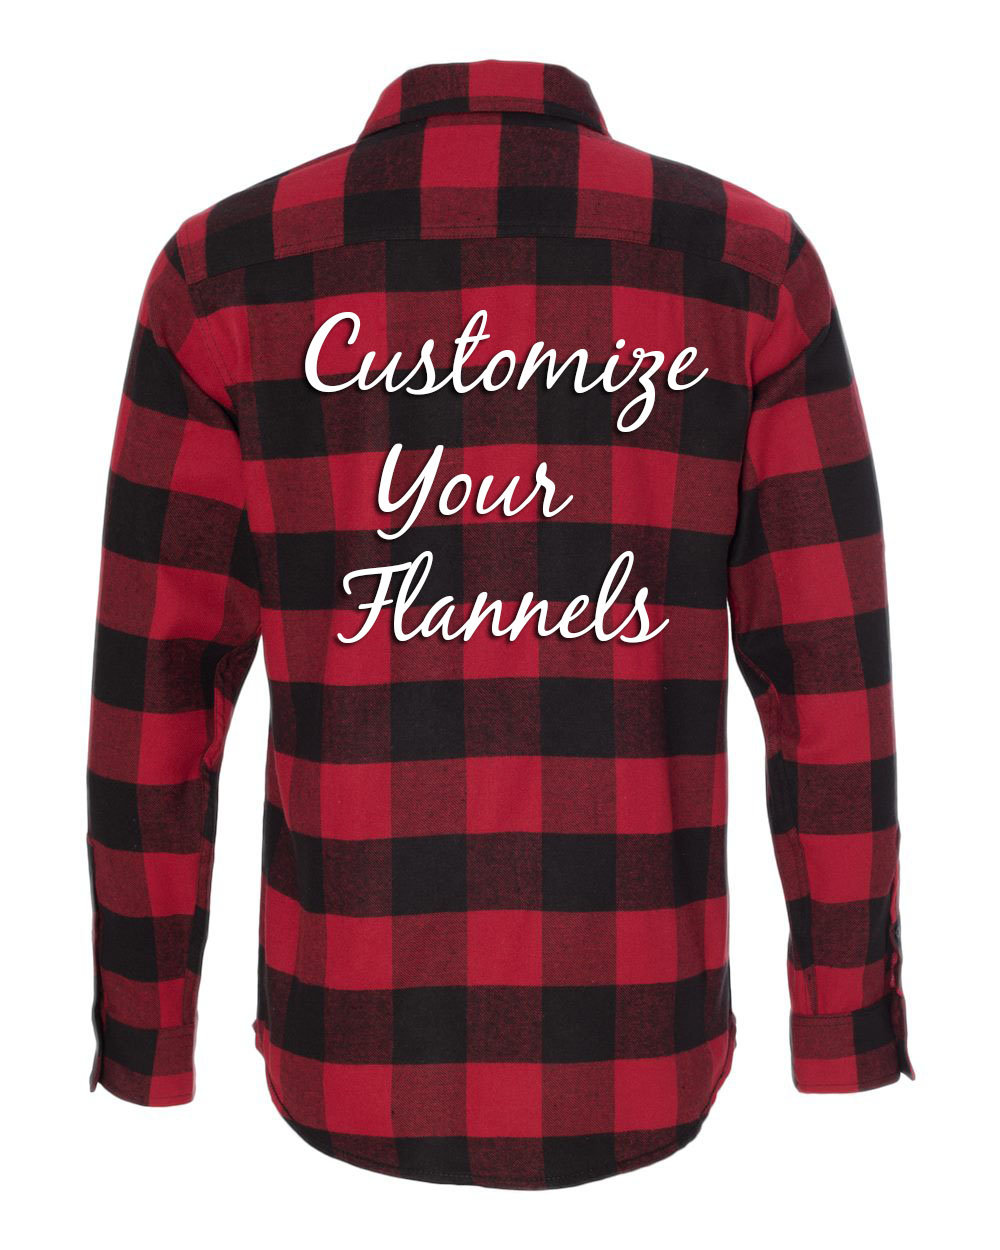 Customized Red Black Buffalo Flannel Shirts Design Your Own Bridesmaids Flannels Red Buffalo Plaid